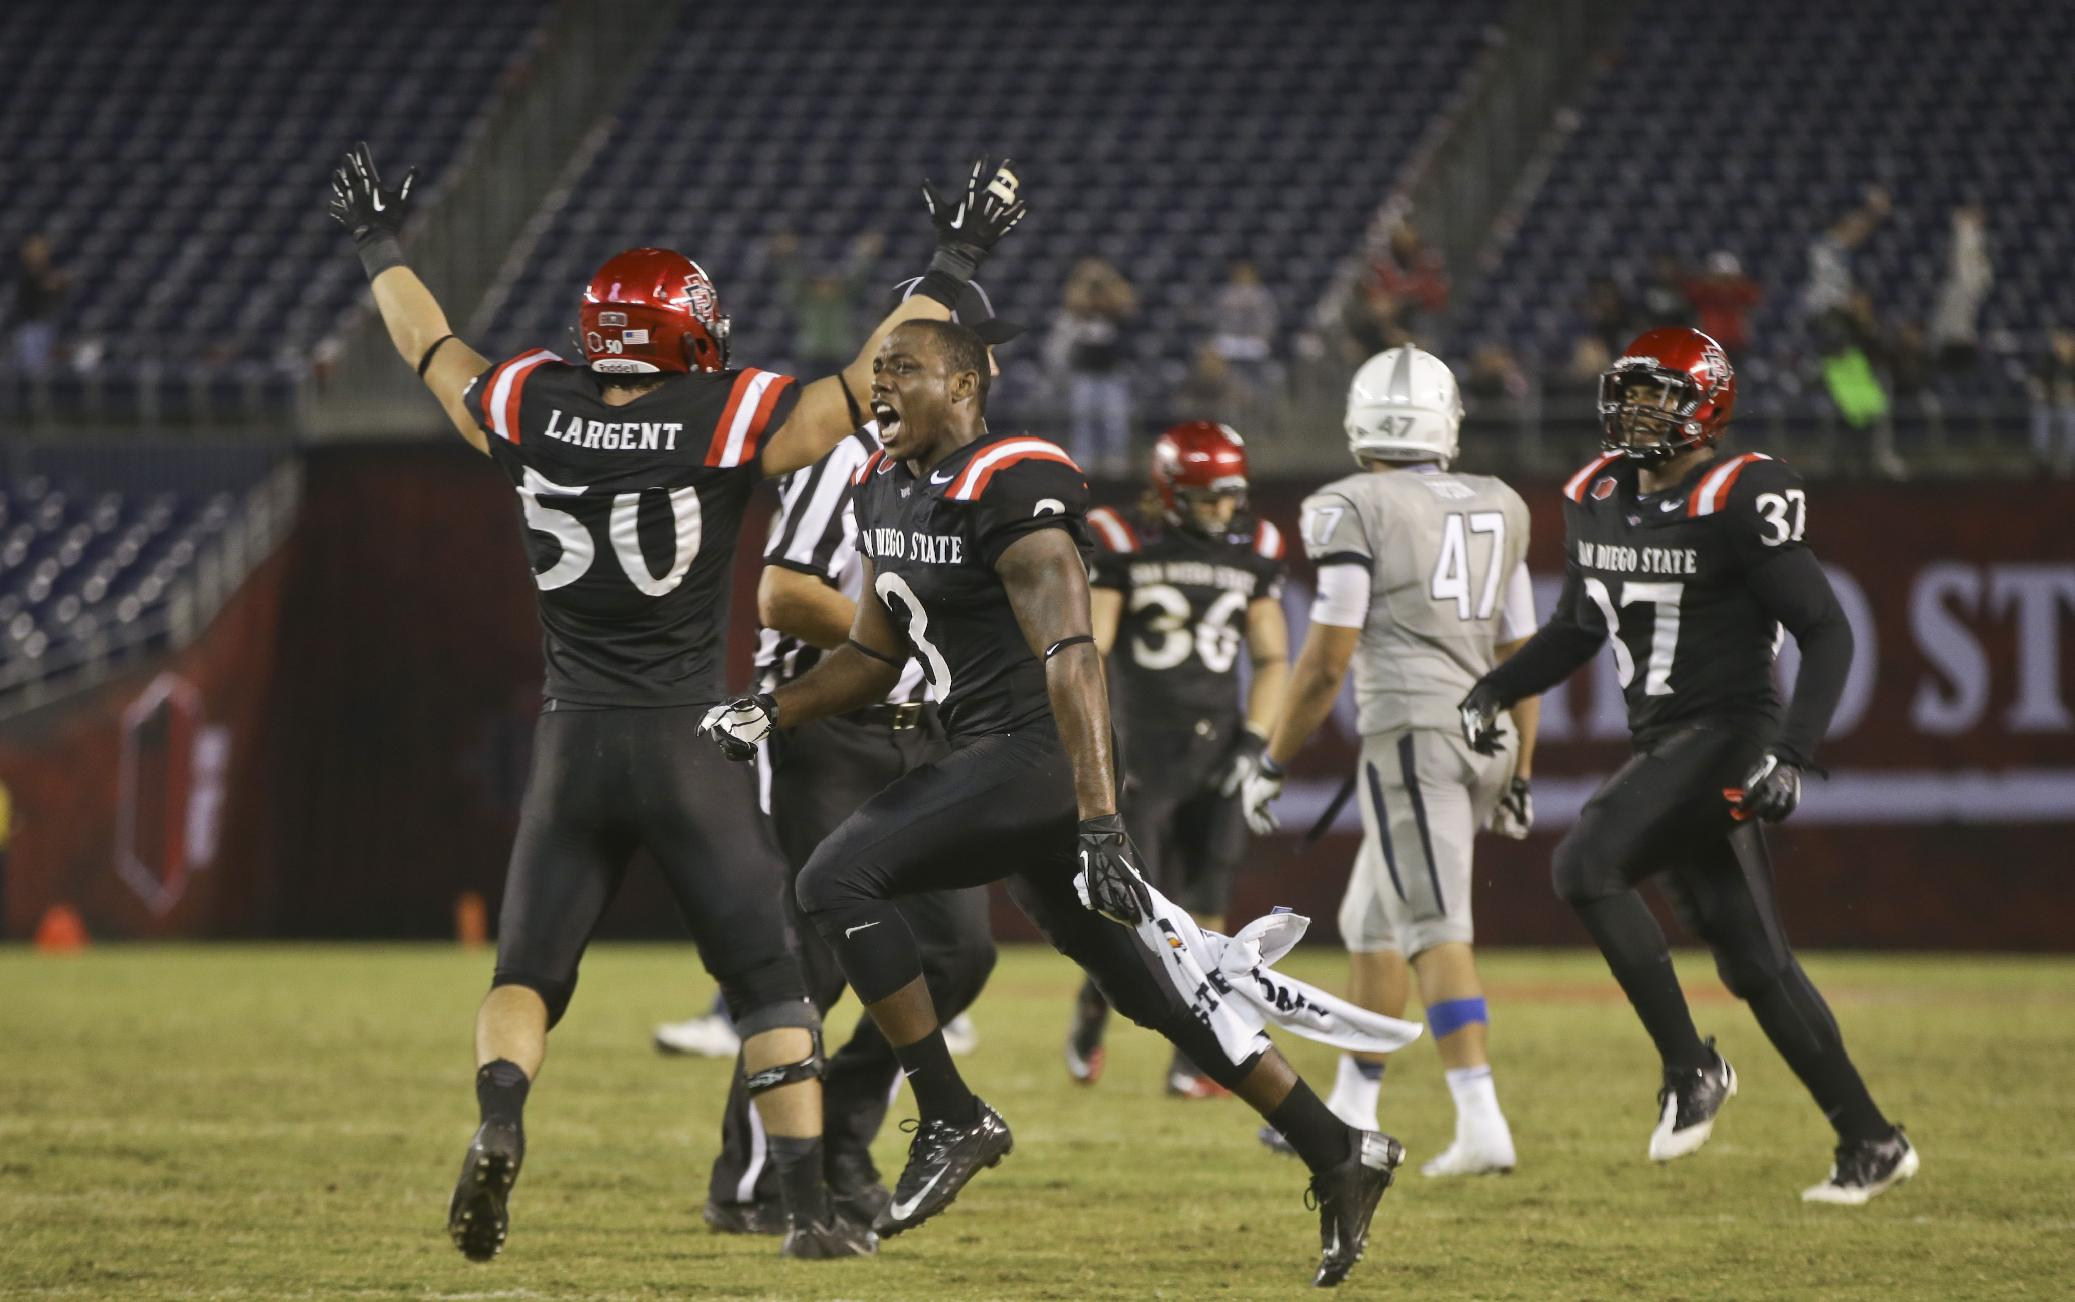 San Diego State's Ezell Ruffin races onto the field as teammates begin their celebration following a 51-44 overtime victory over Nevada in a NCAA college football game  Friday, Oct. 4, 2013, in San Diego